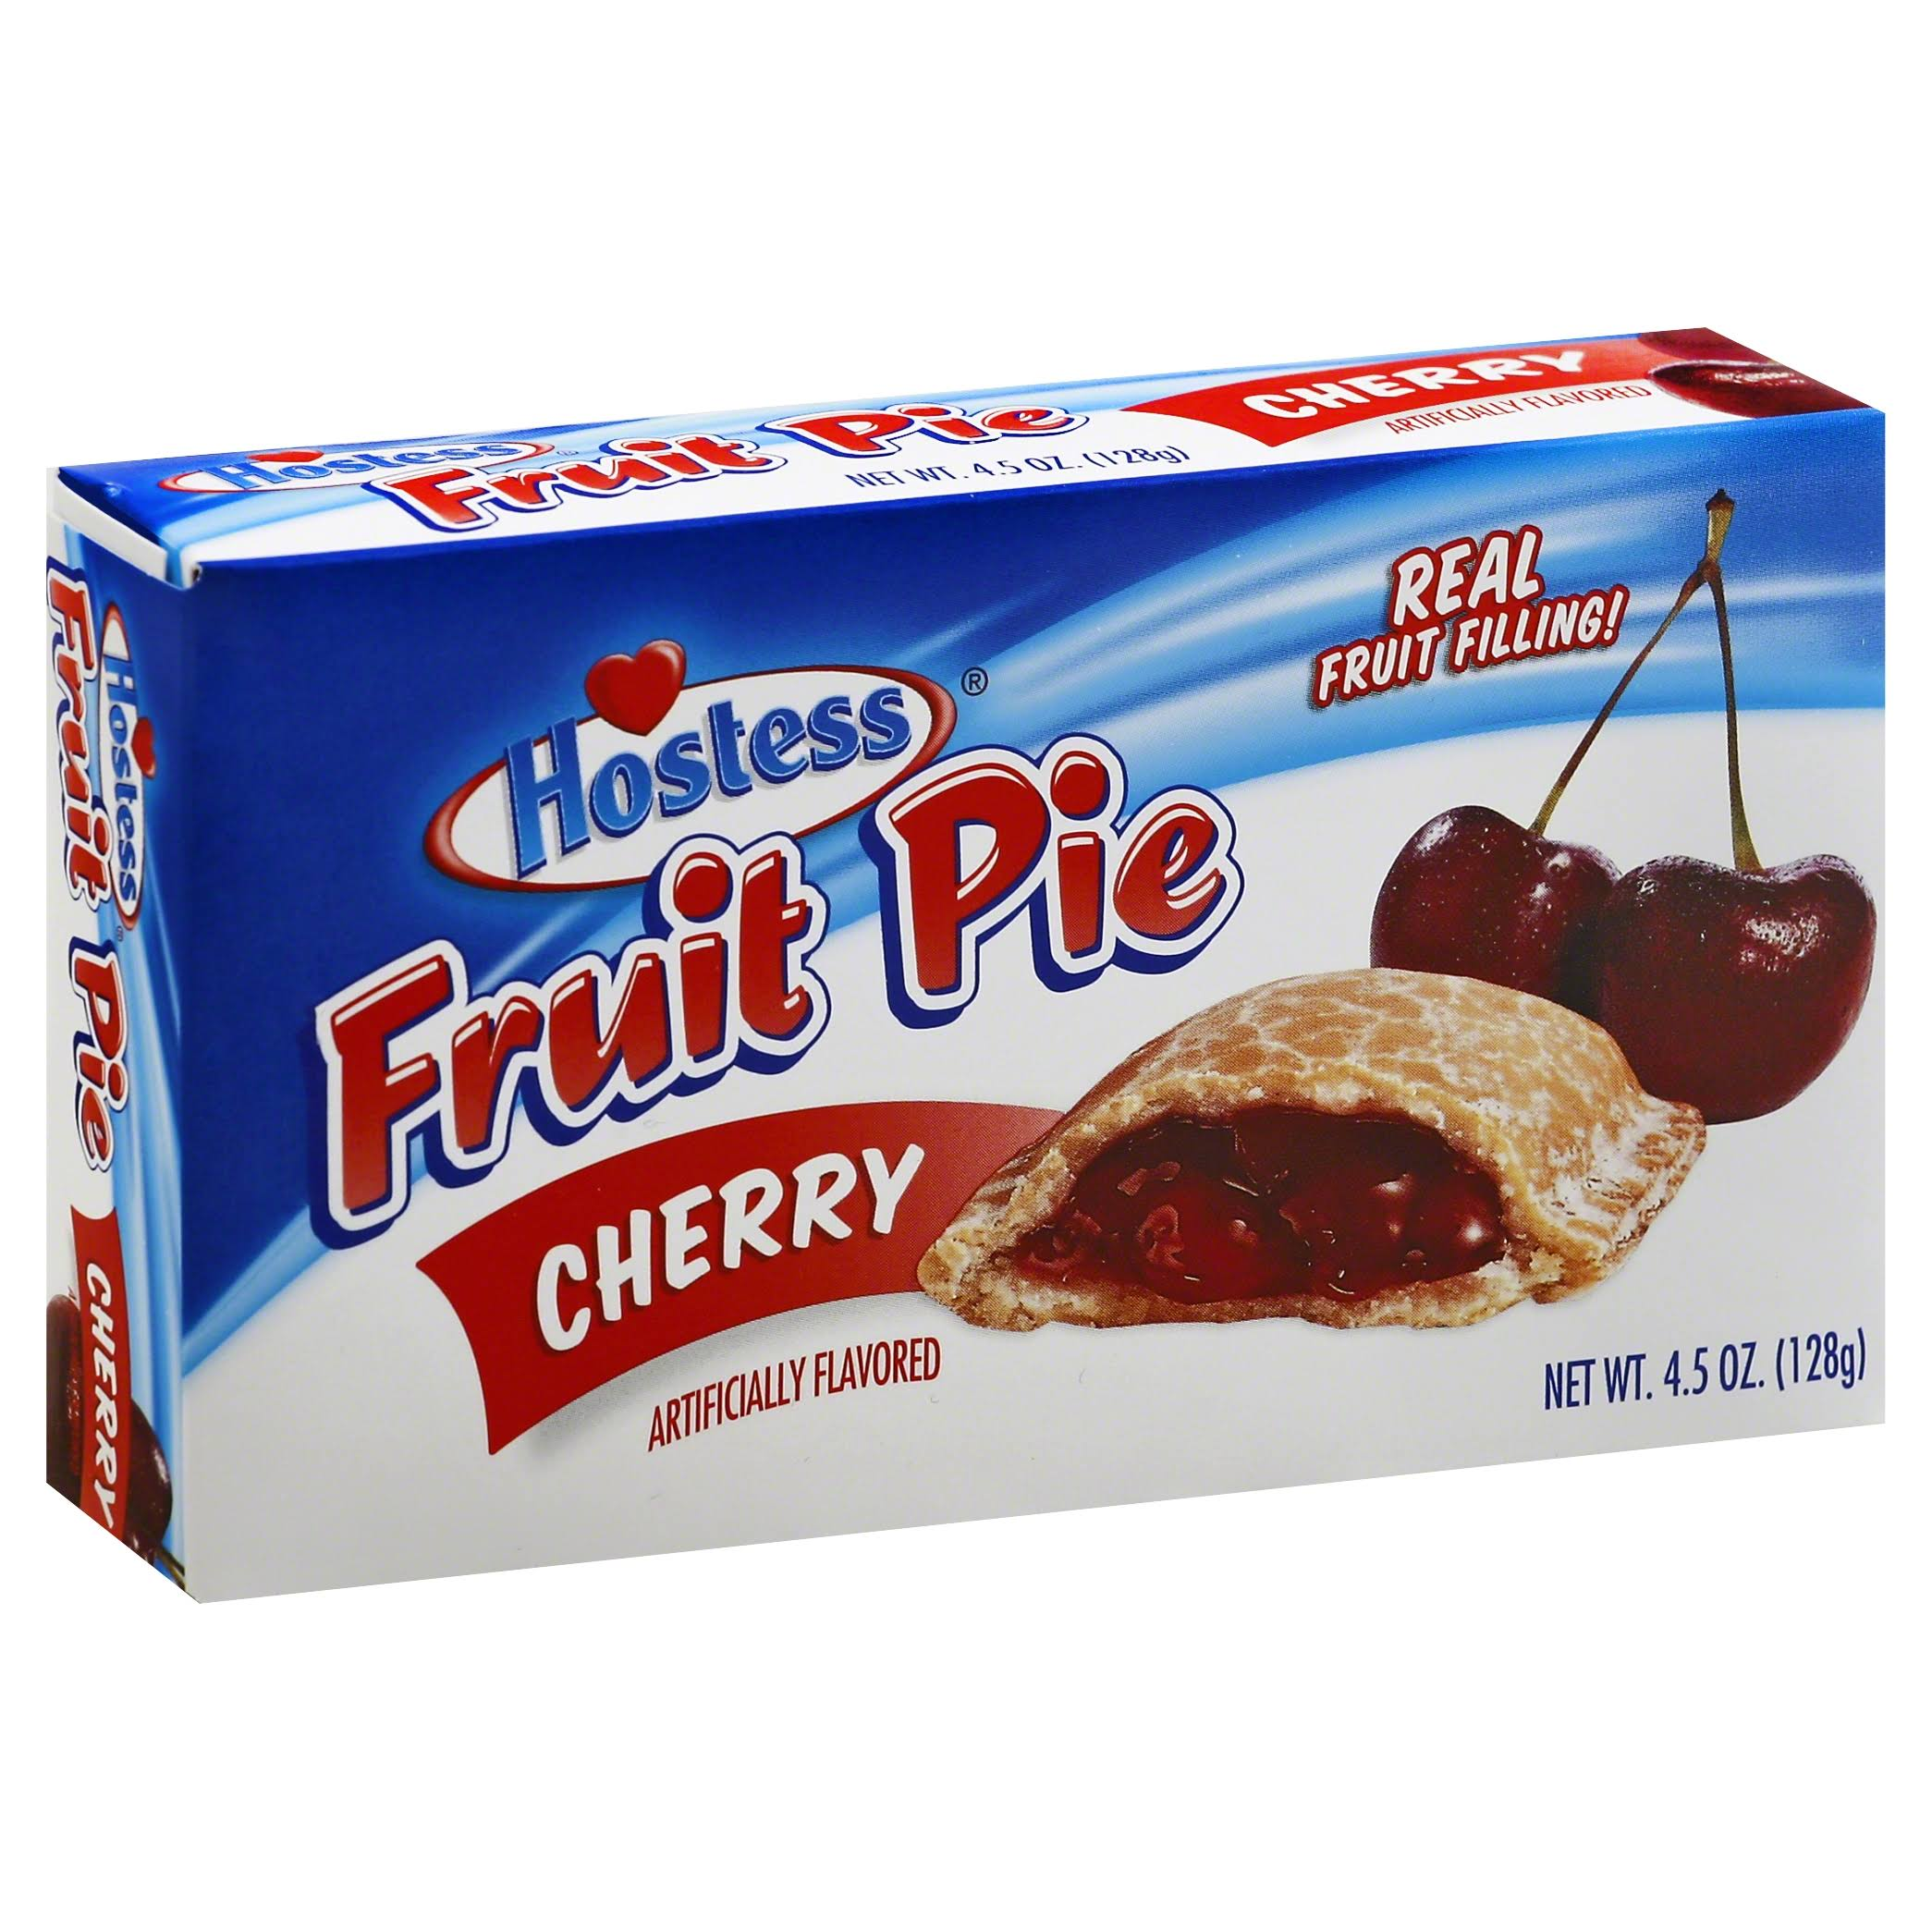 Hostess Fruit Pie - Cherry